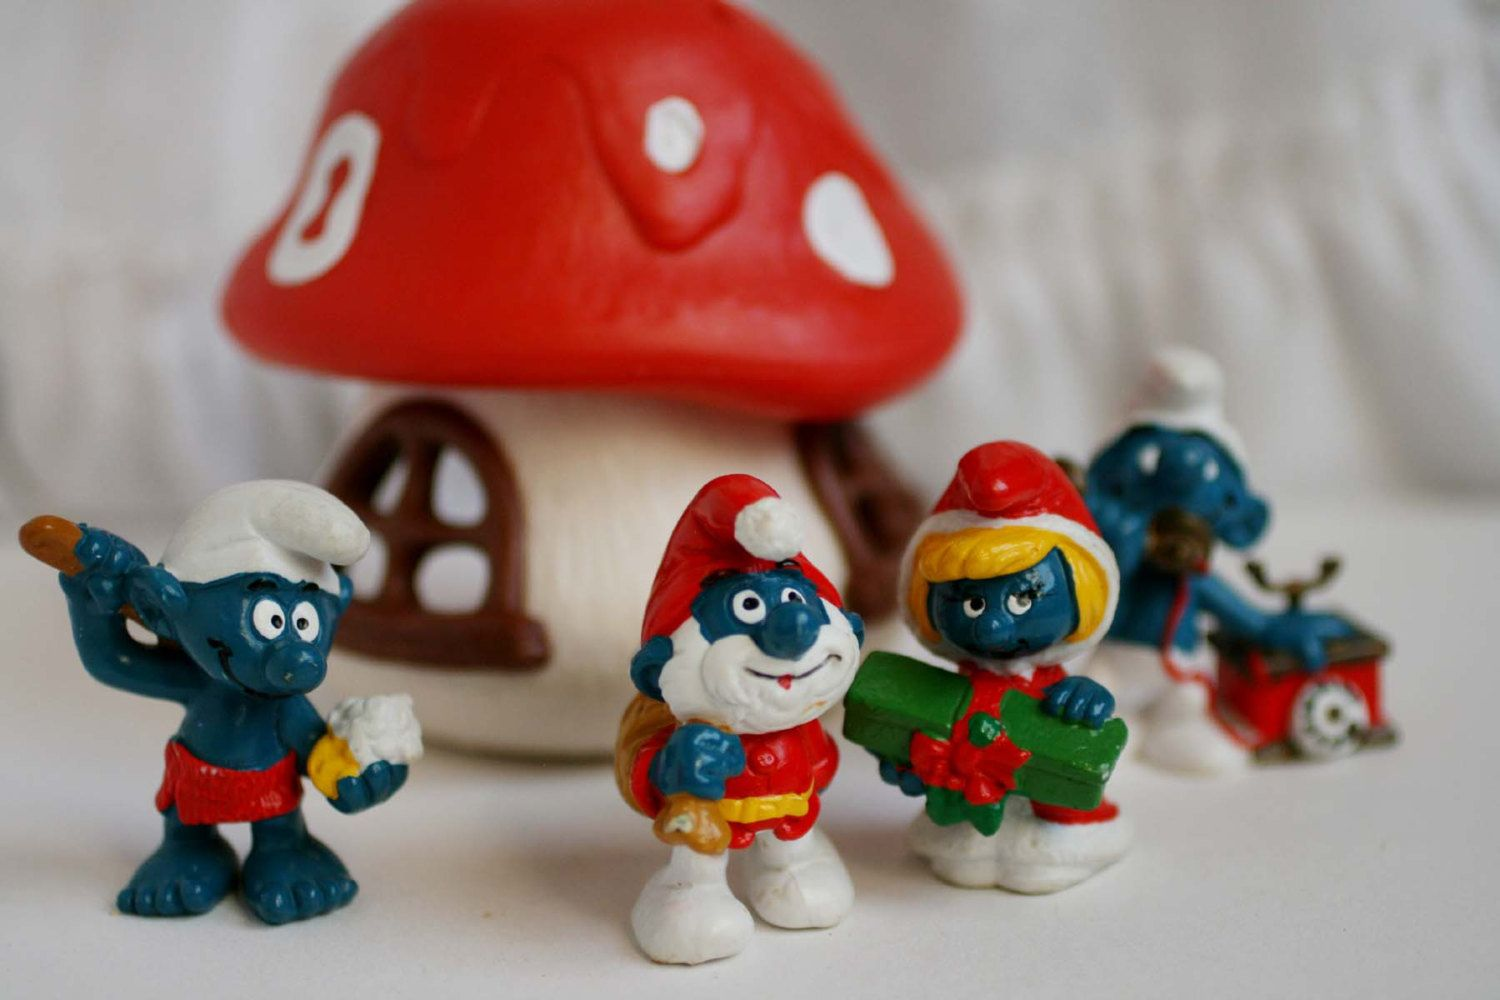 Vintage Peyo Smruf Mushroom House and Smurfs, Christmas Papa Smurf, Smurfett, Sauna Smurf. by AbateArts on Etsy